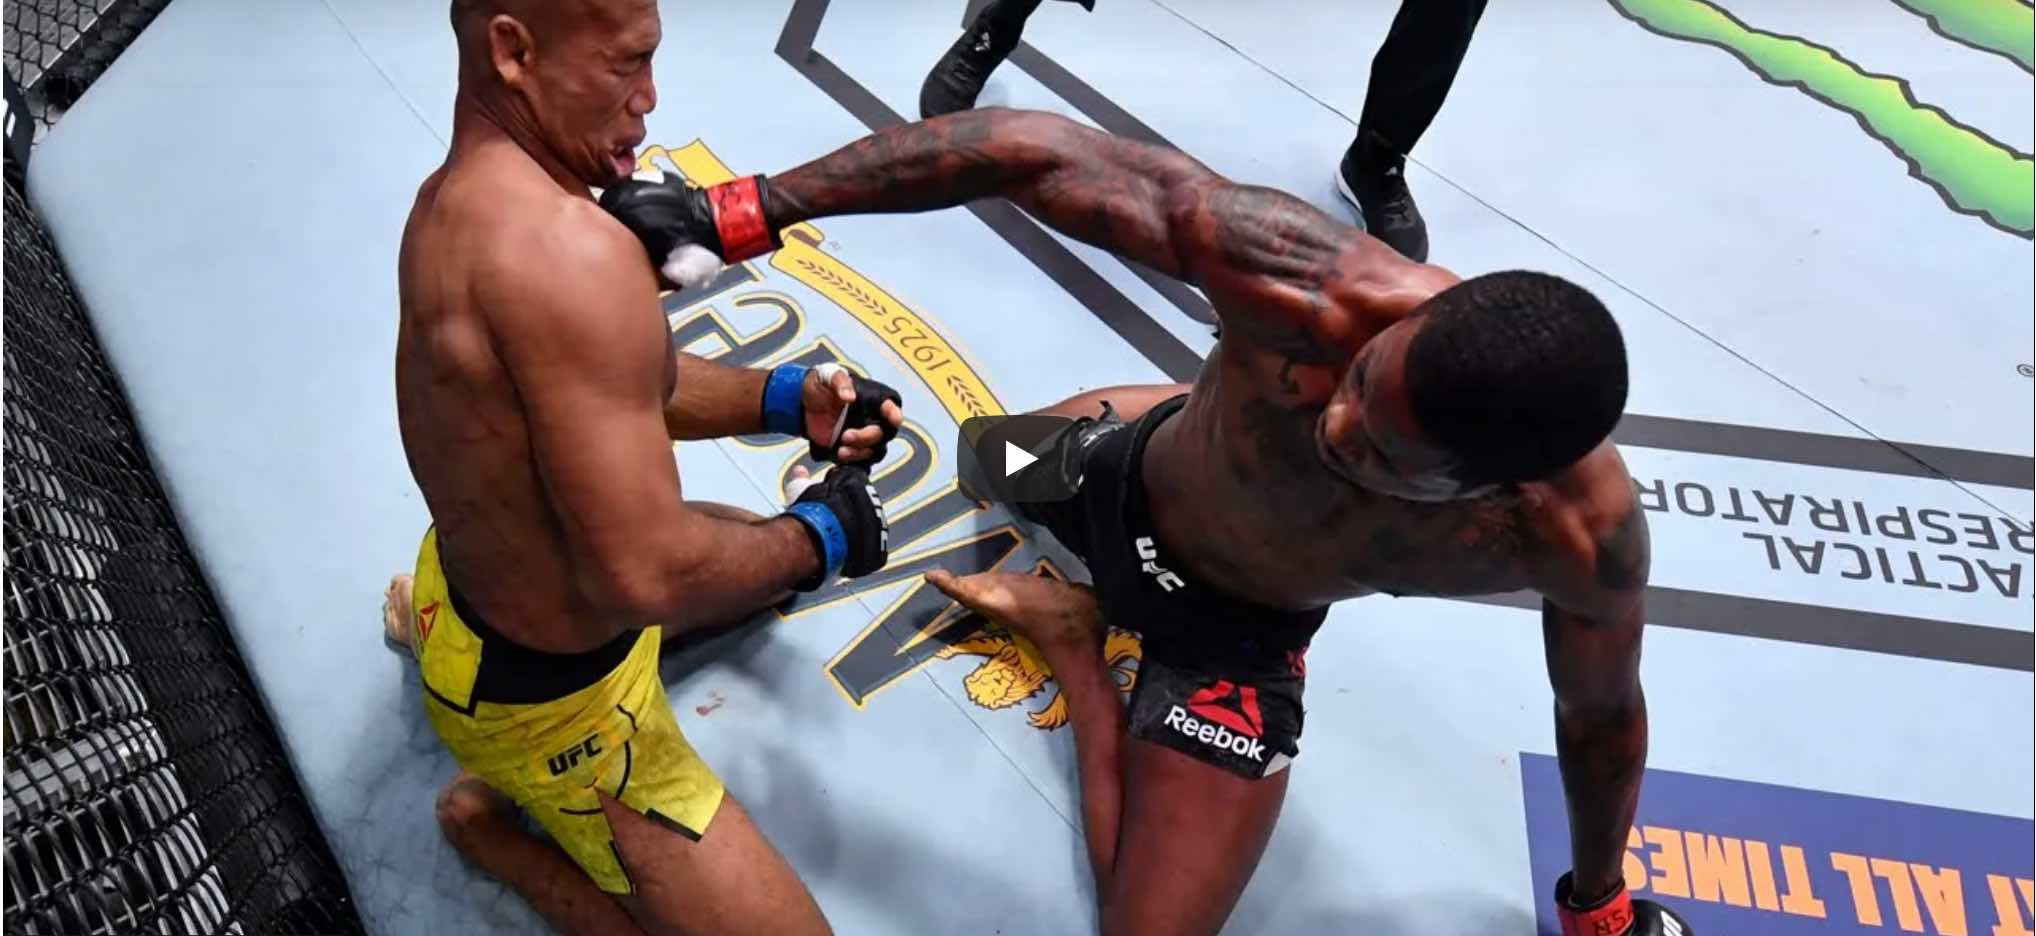 UFC Knockout of the Year 2020 video